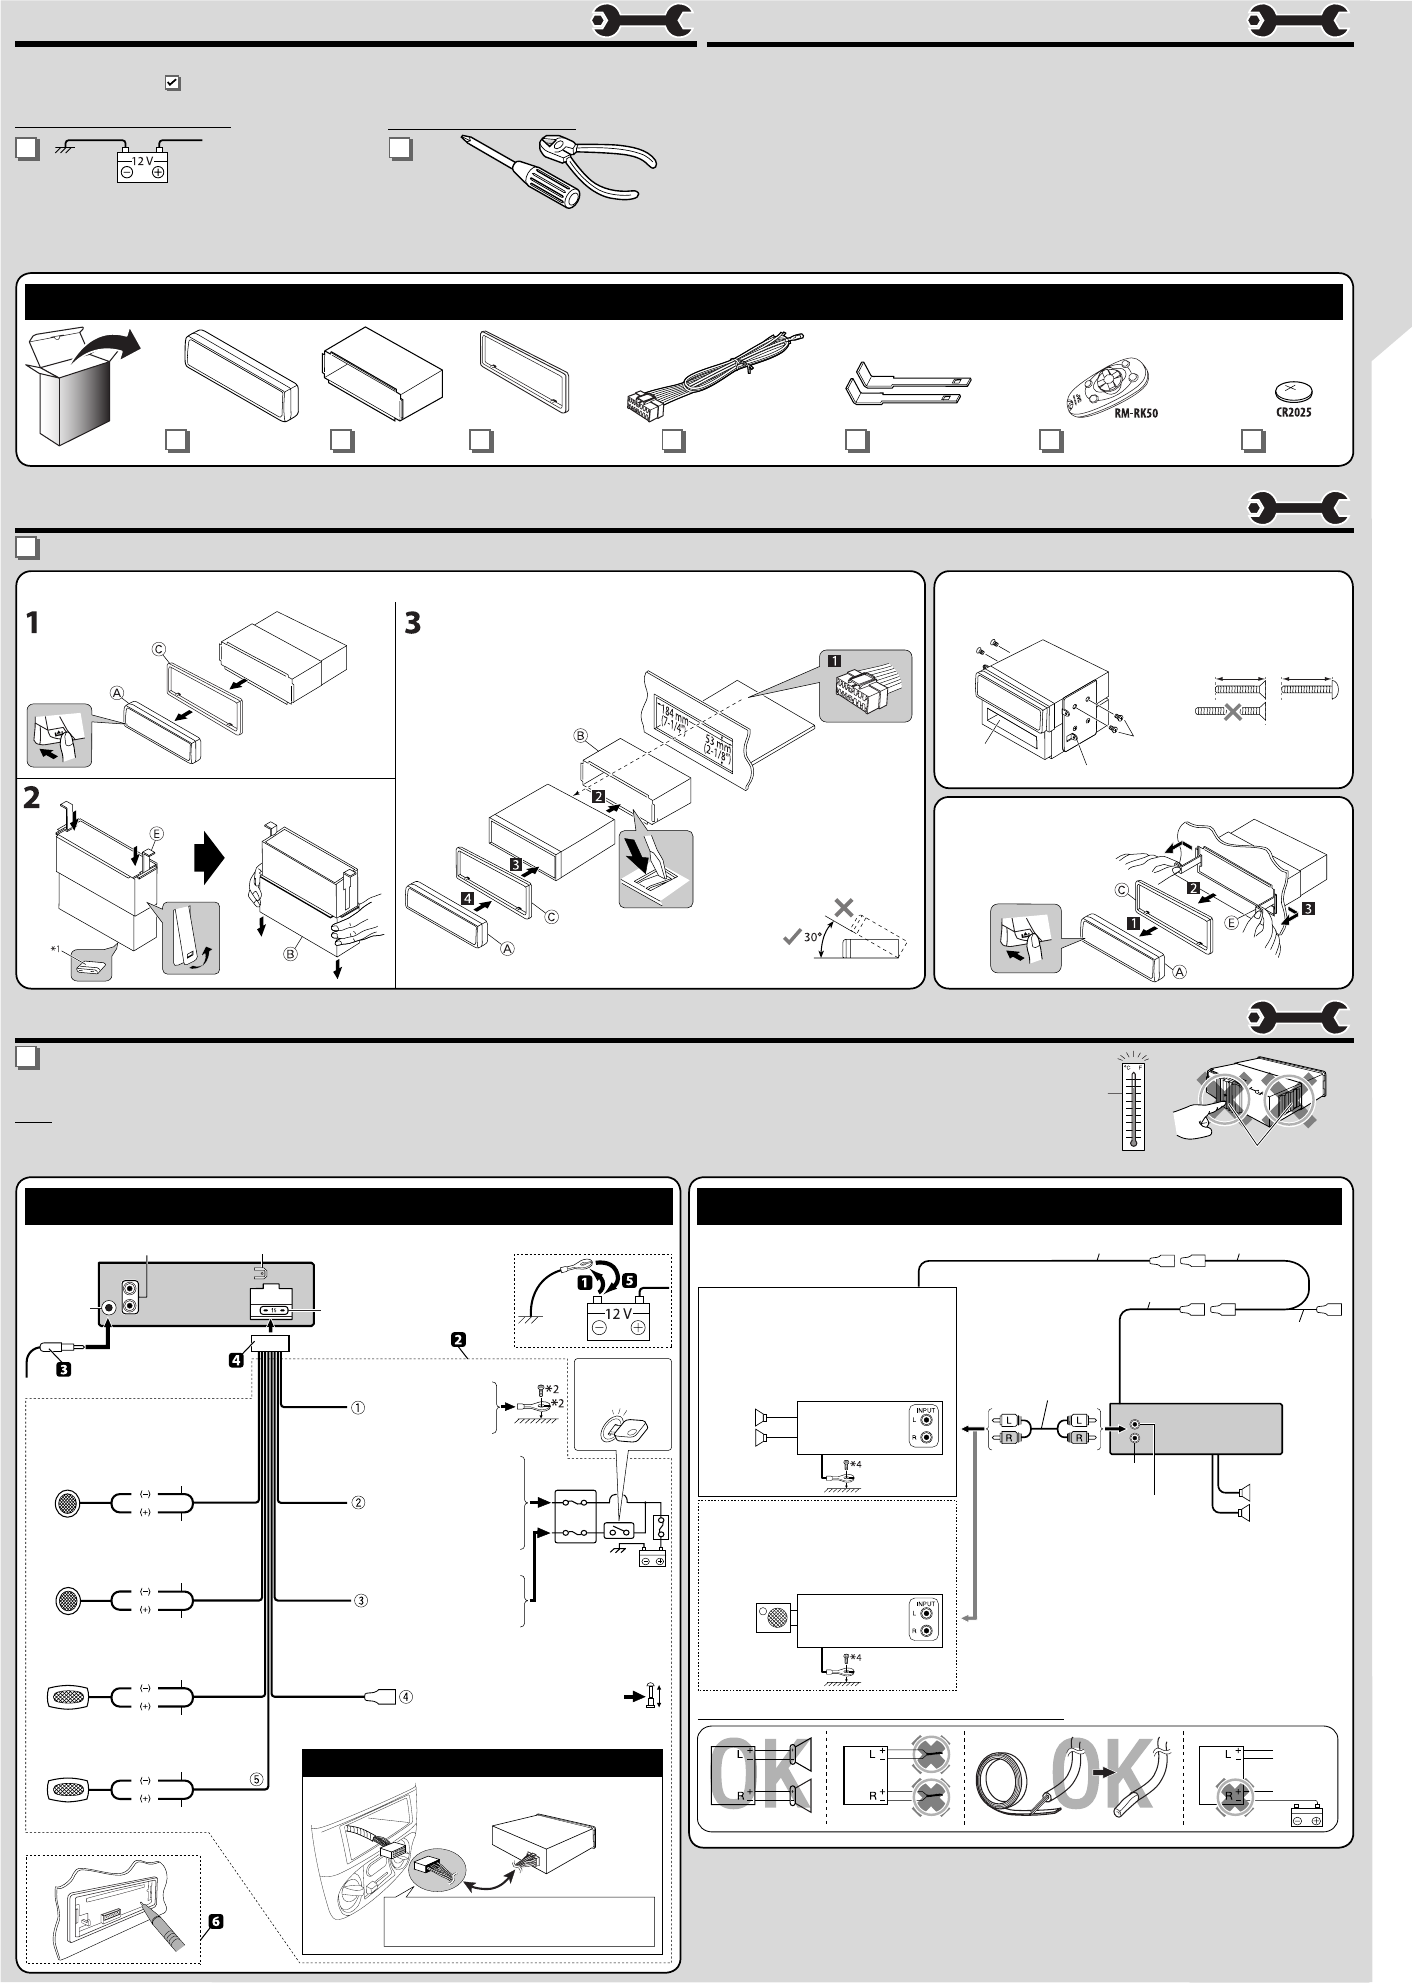 jvc kd s16 user manual new wiring resources 2019. Black Bedroom Furniture Sets. Home Design Ideas